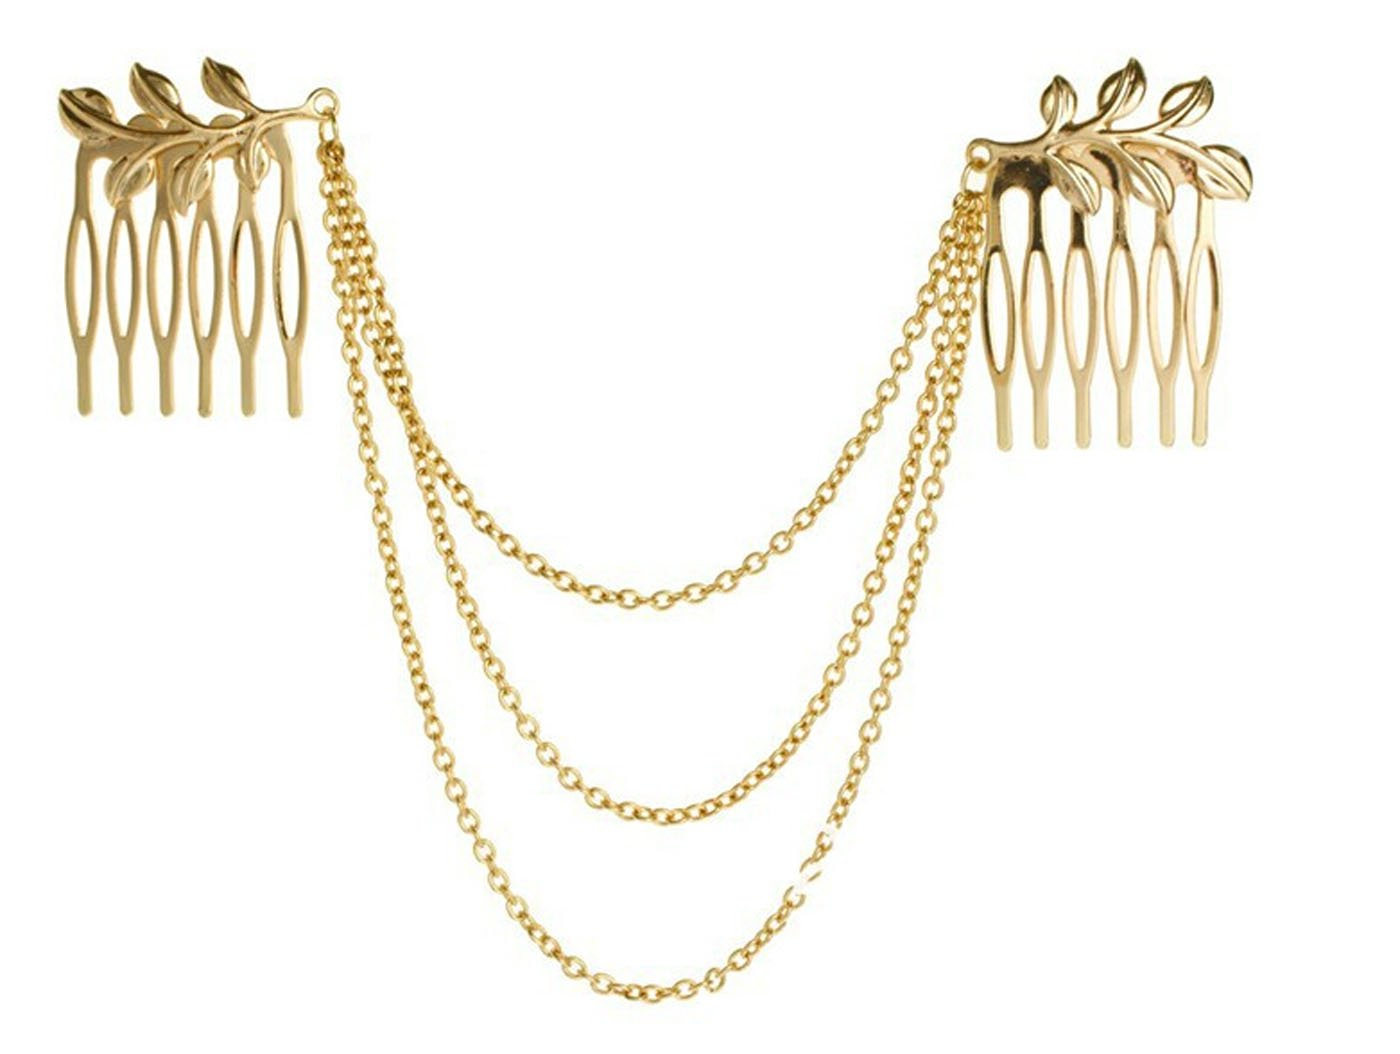 HYYIdealism Vintage Gothic Style New Ladies Metal Chain Fringe Tassel Hair Comb Cuff Head Hair Band-Gold hair Accessory